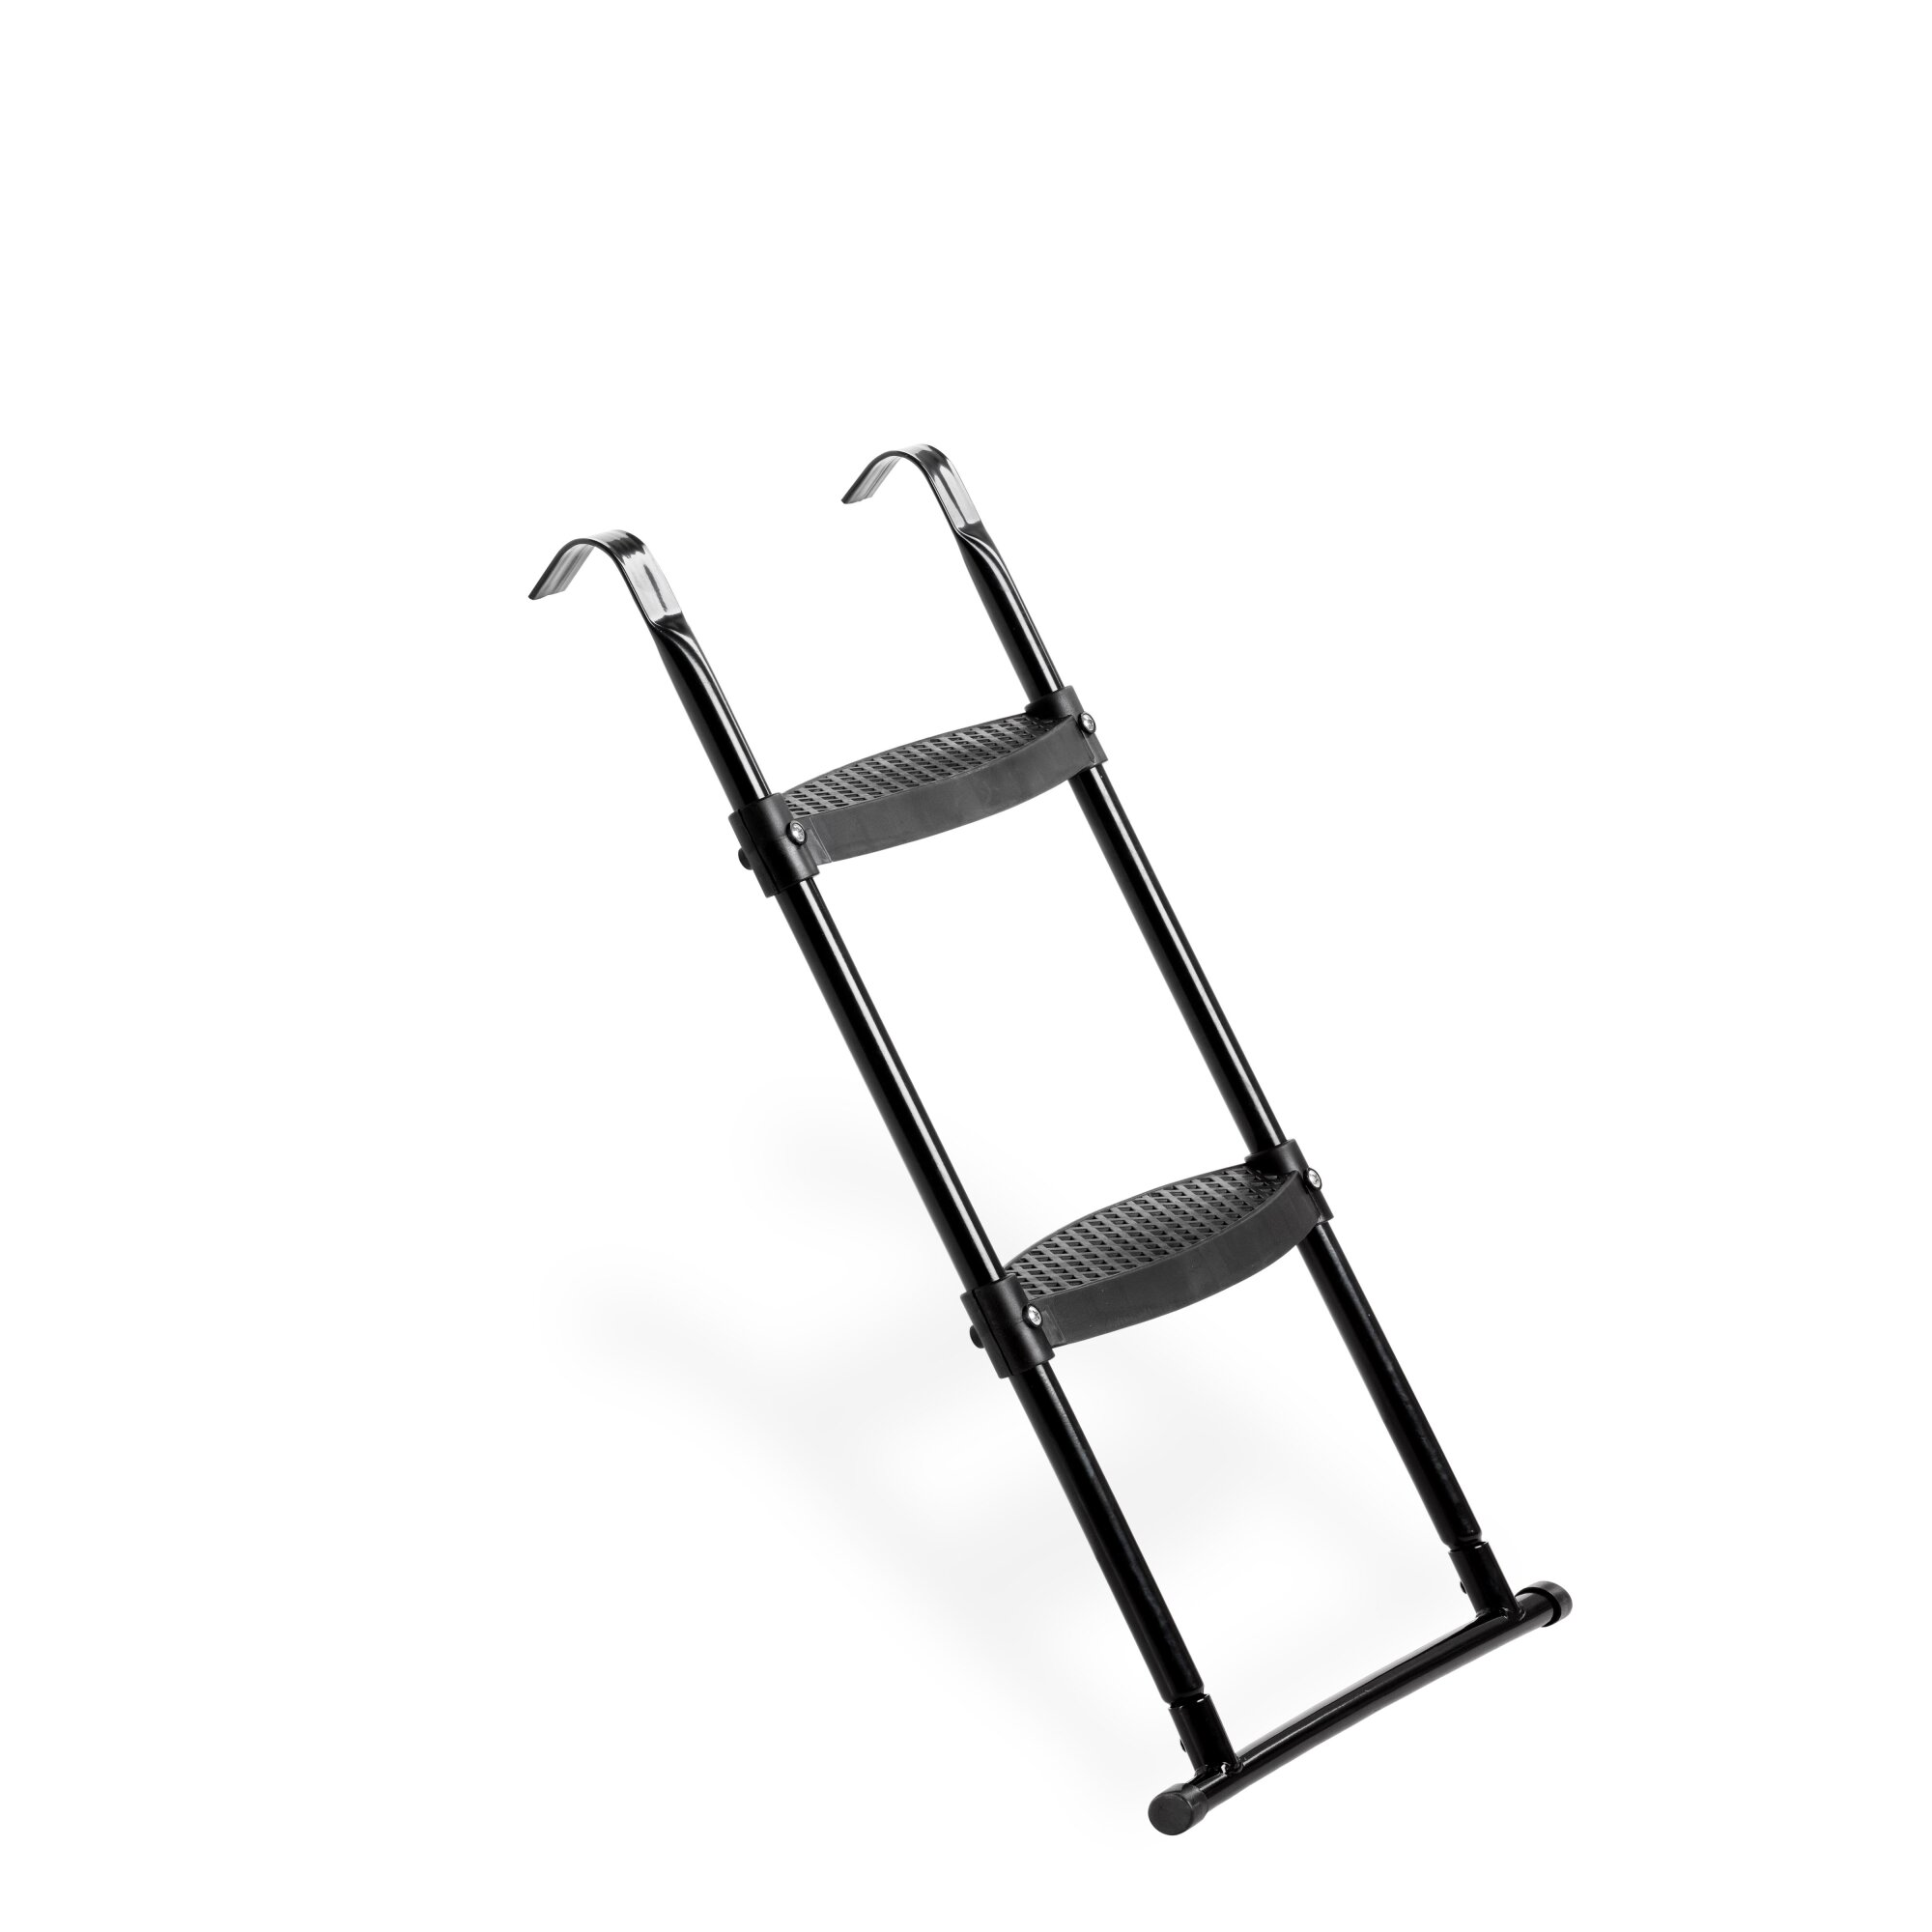 EXIT - Trampoline Ladder for Tramplines with a diameter of 253-305 cm (11.40.41.00)